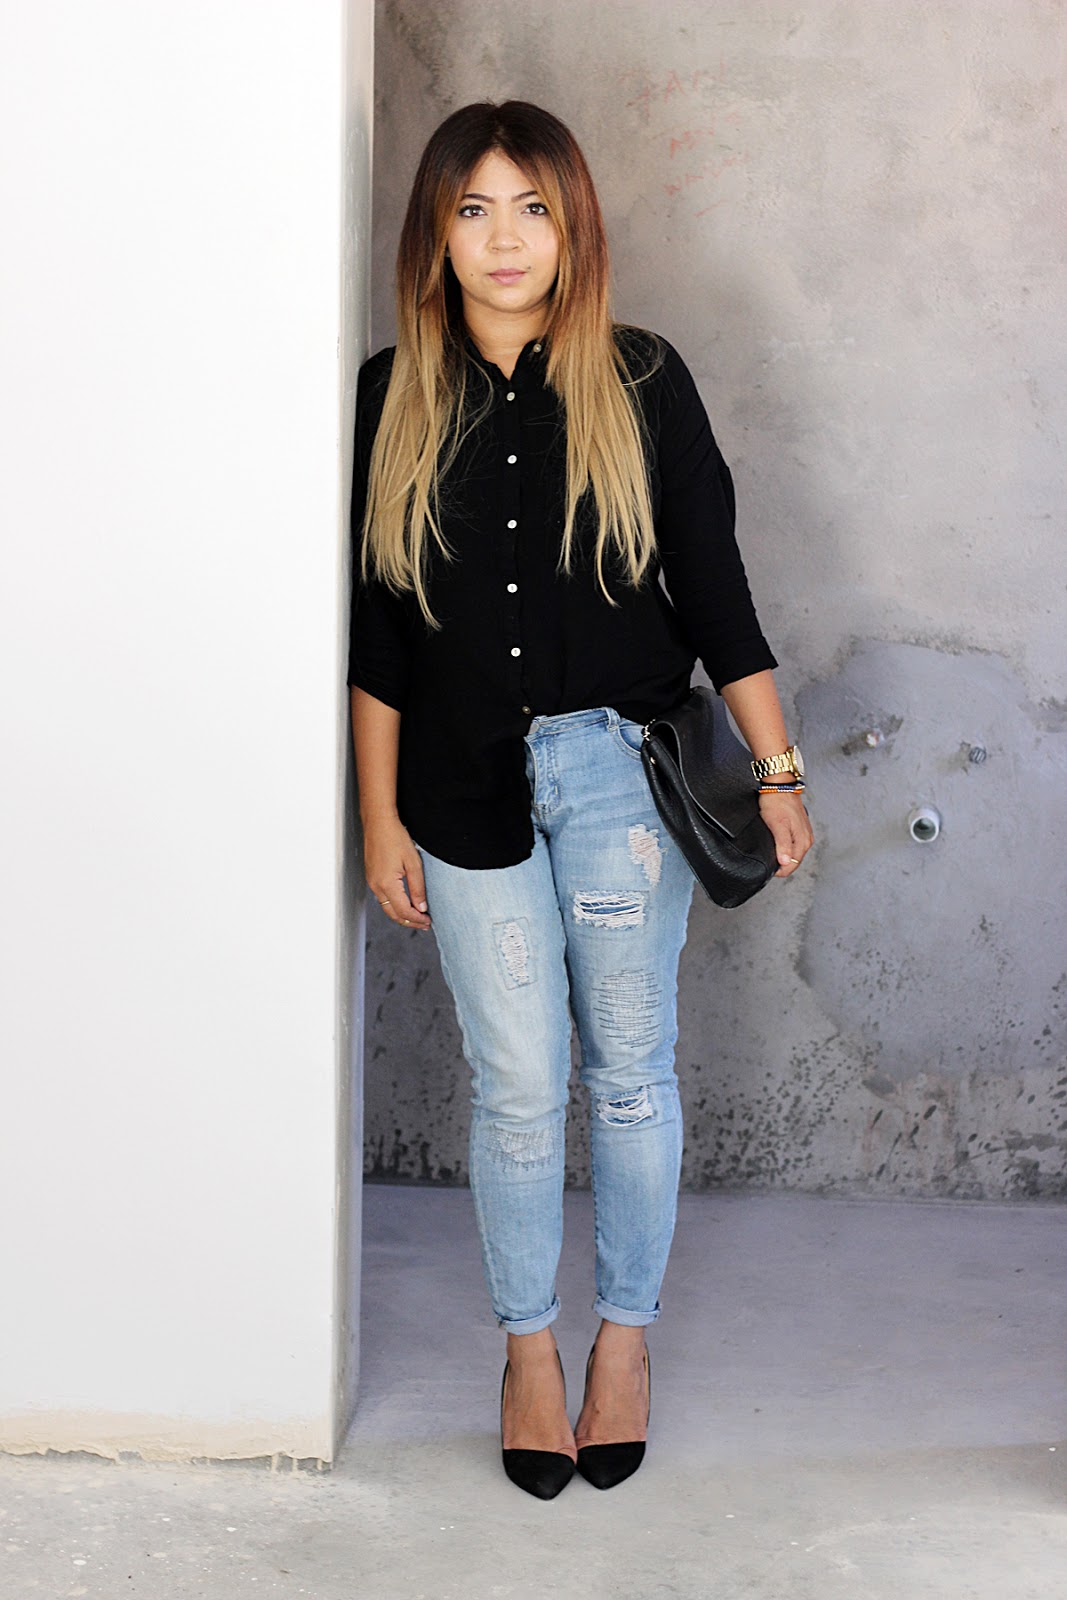 shirt & jeans ootd